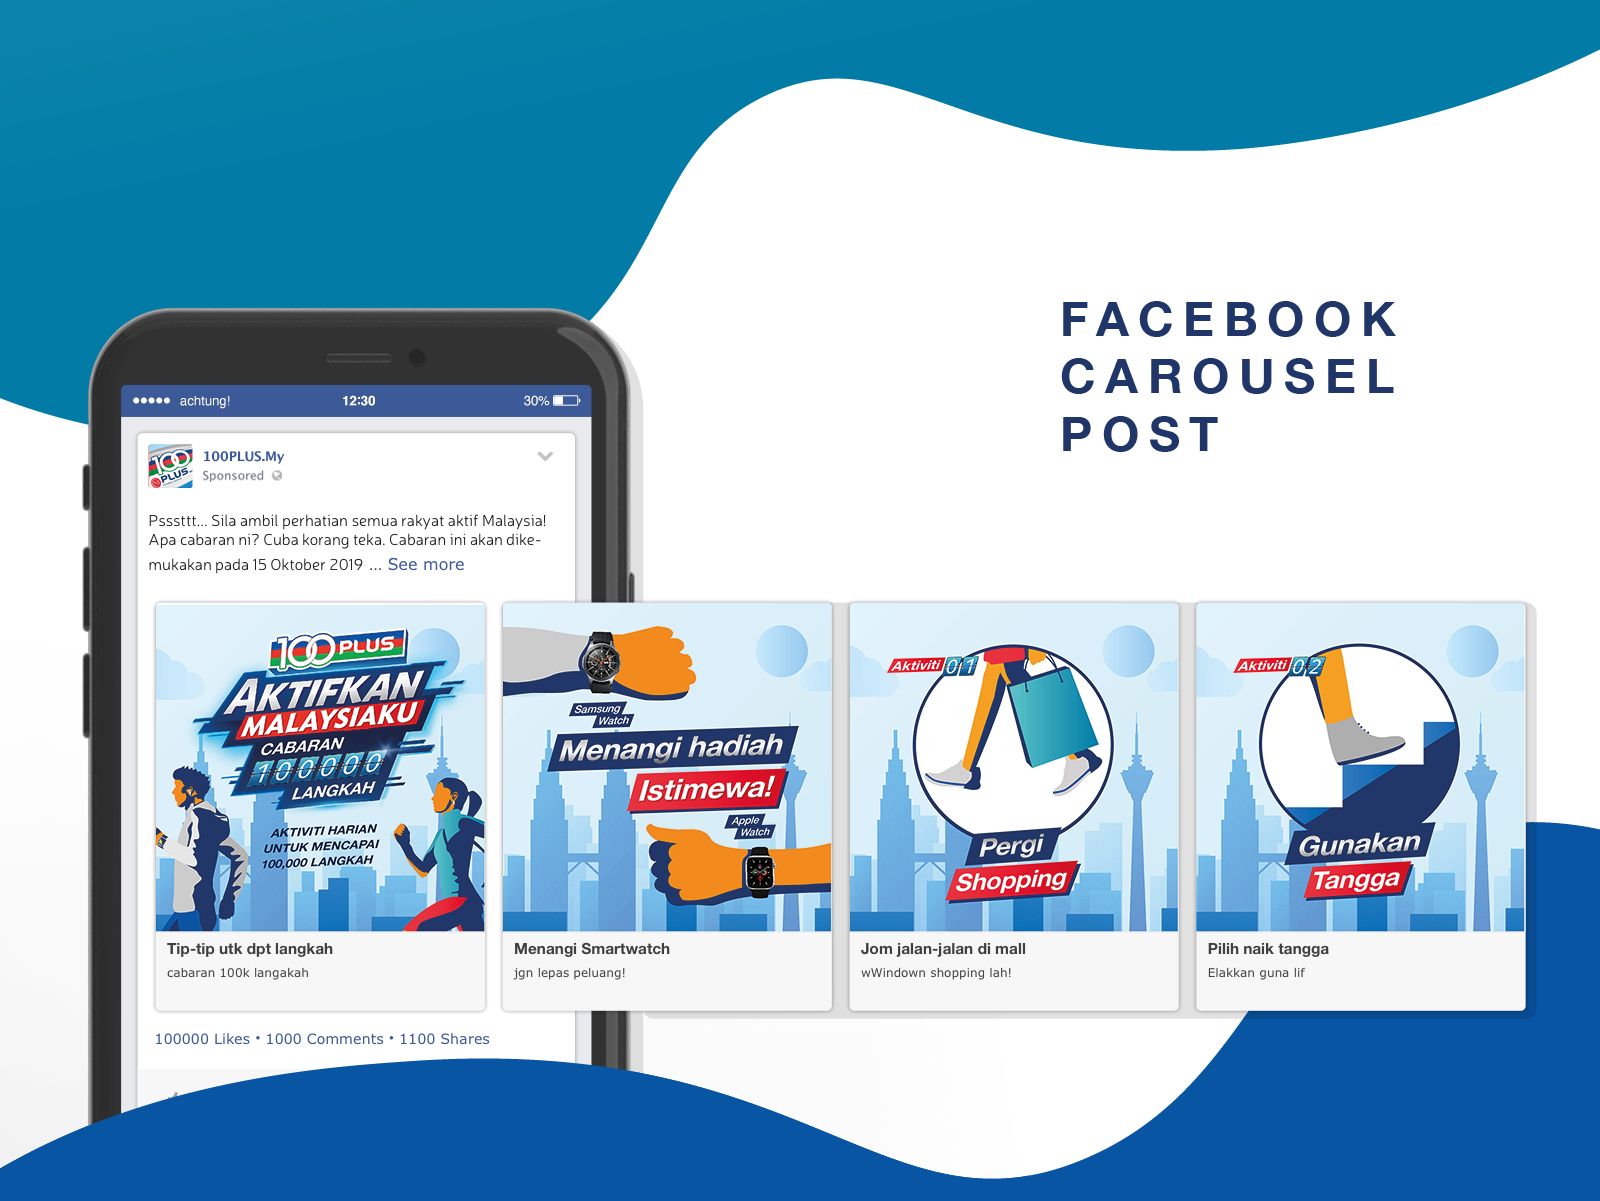 100Plus Aktifkan Malaysiaku 100,000 Steps Challenge campaign Facebook carousel visual featuring prizes and tips to achieve challenge